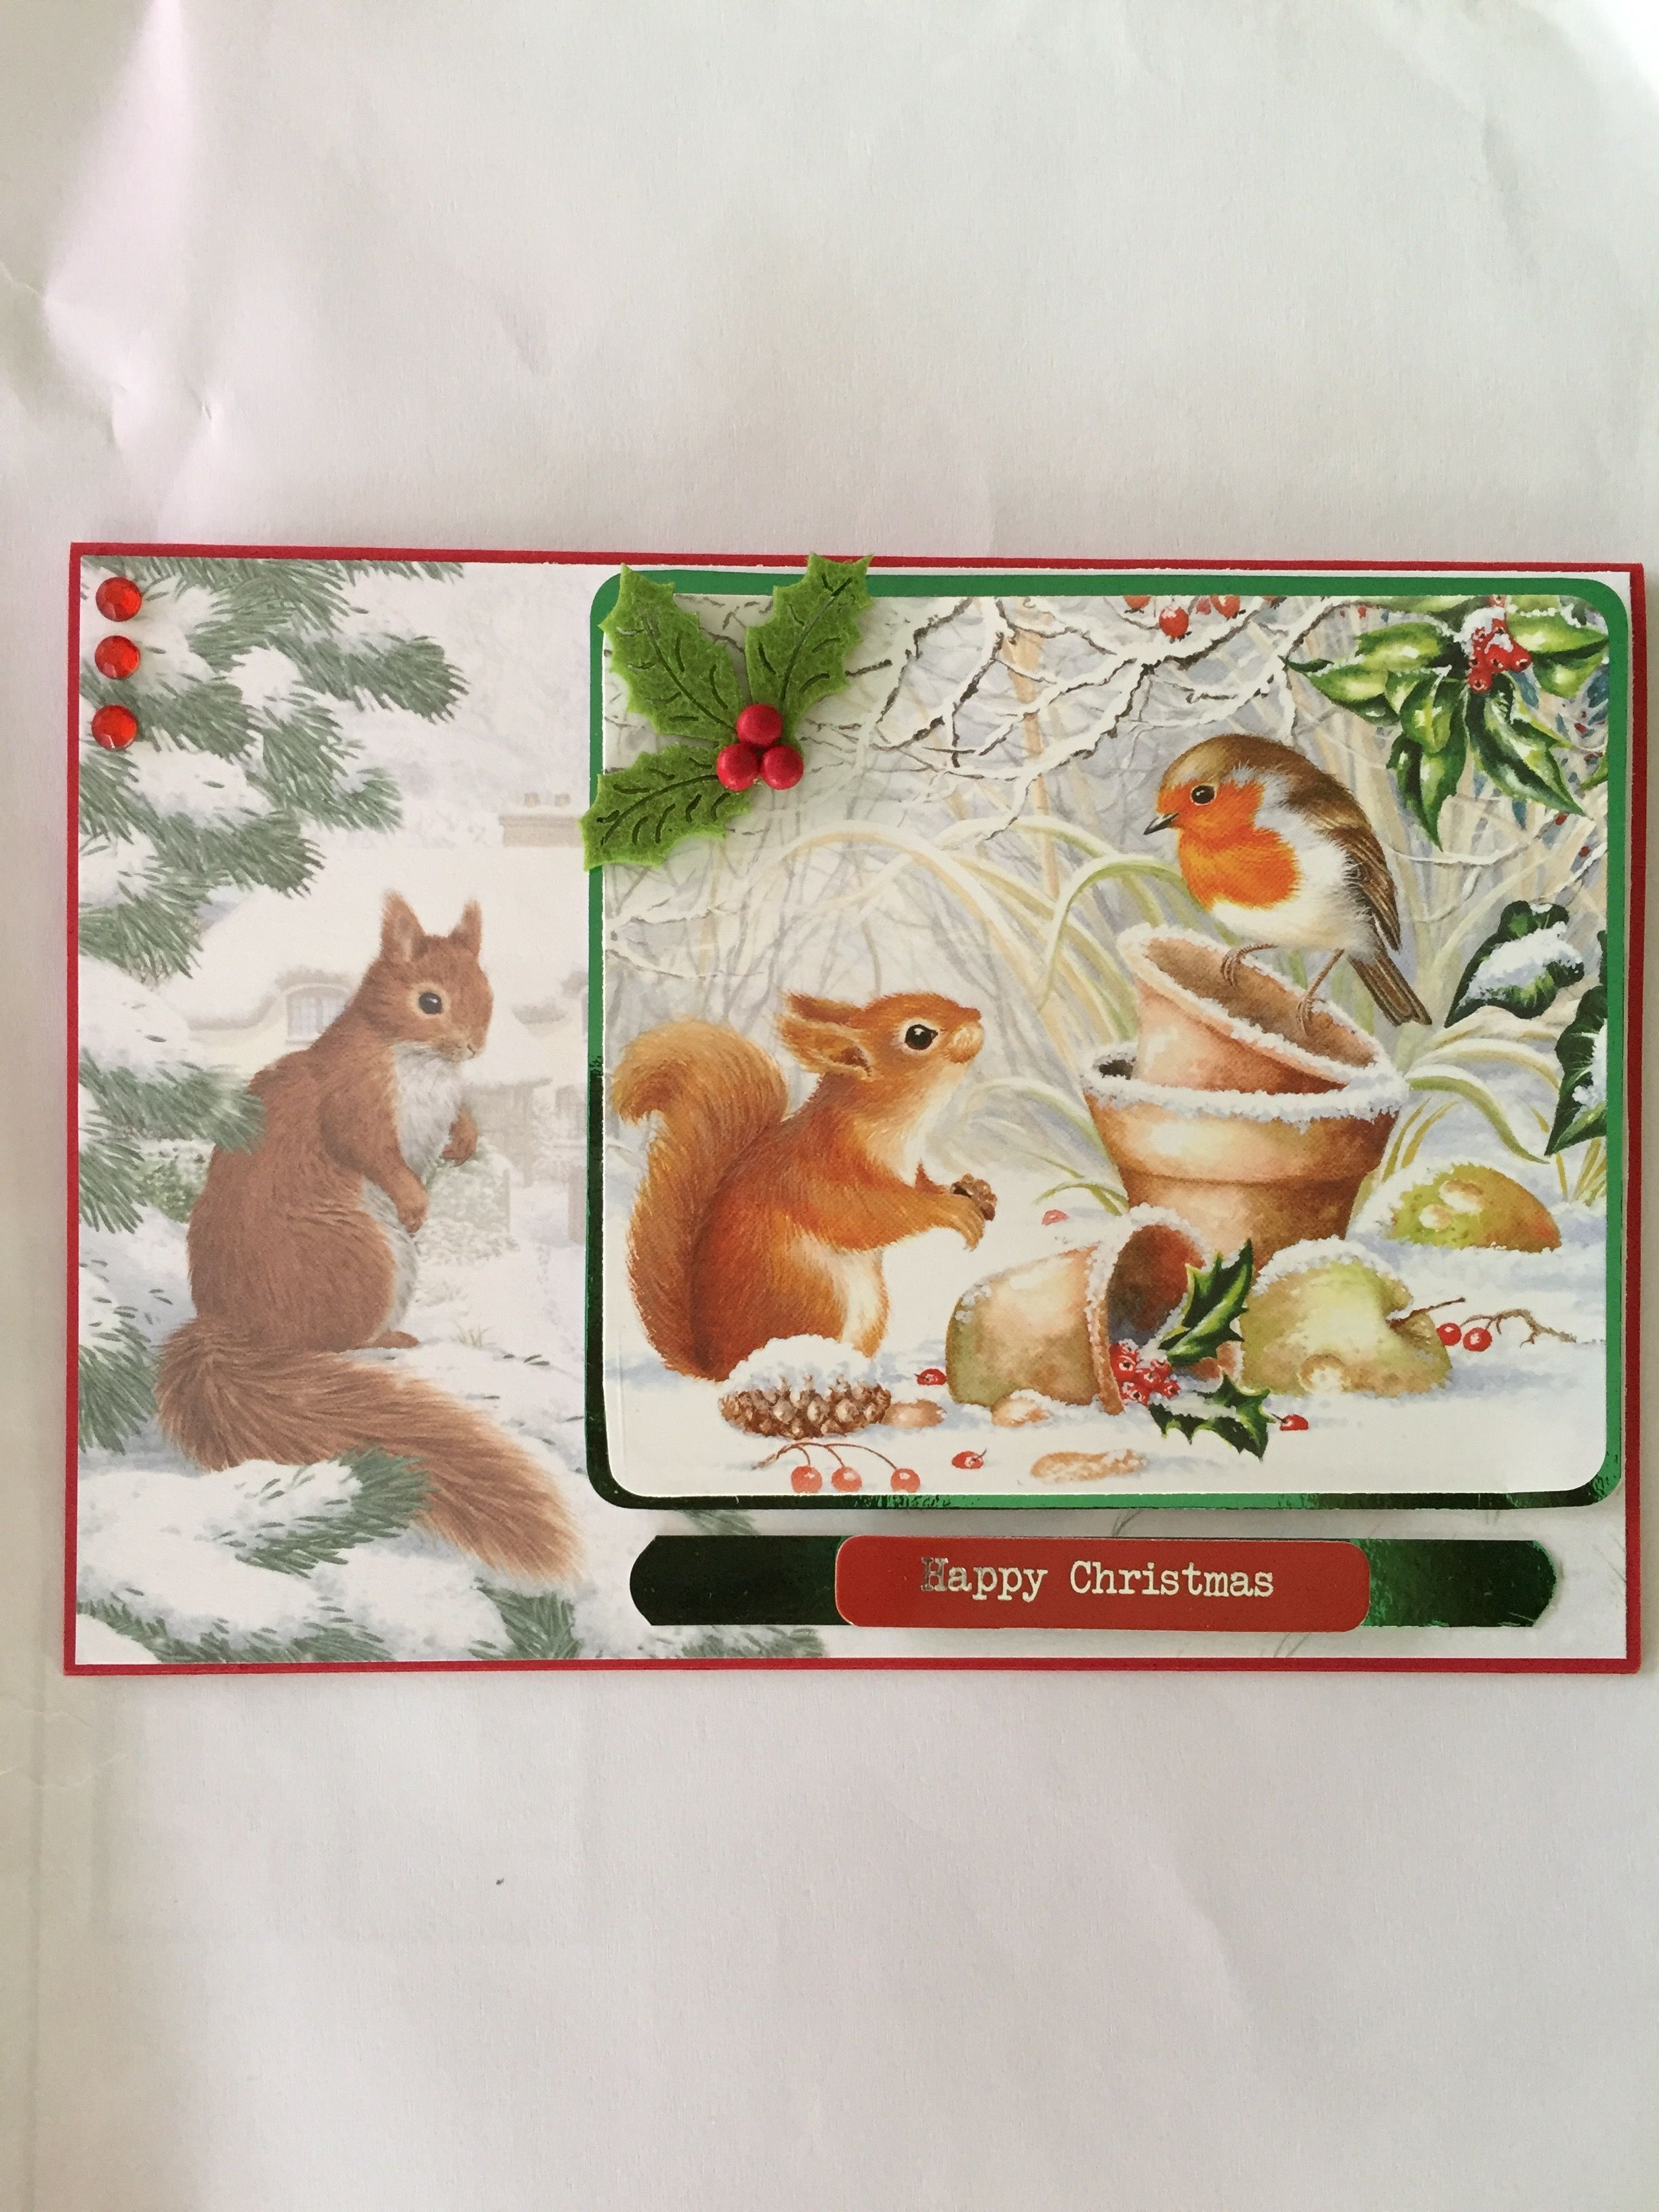 My Hunkydory card wildlife little book